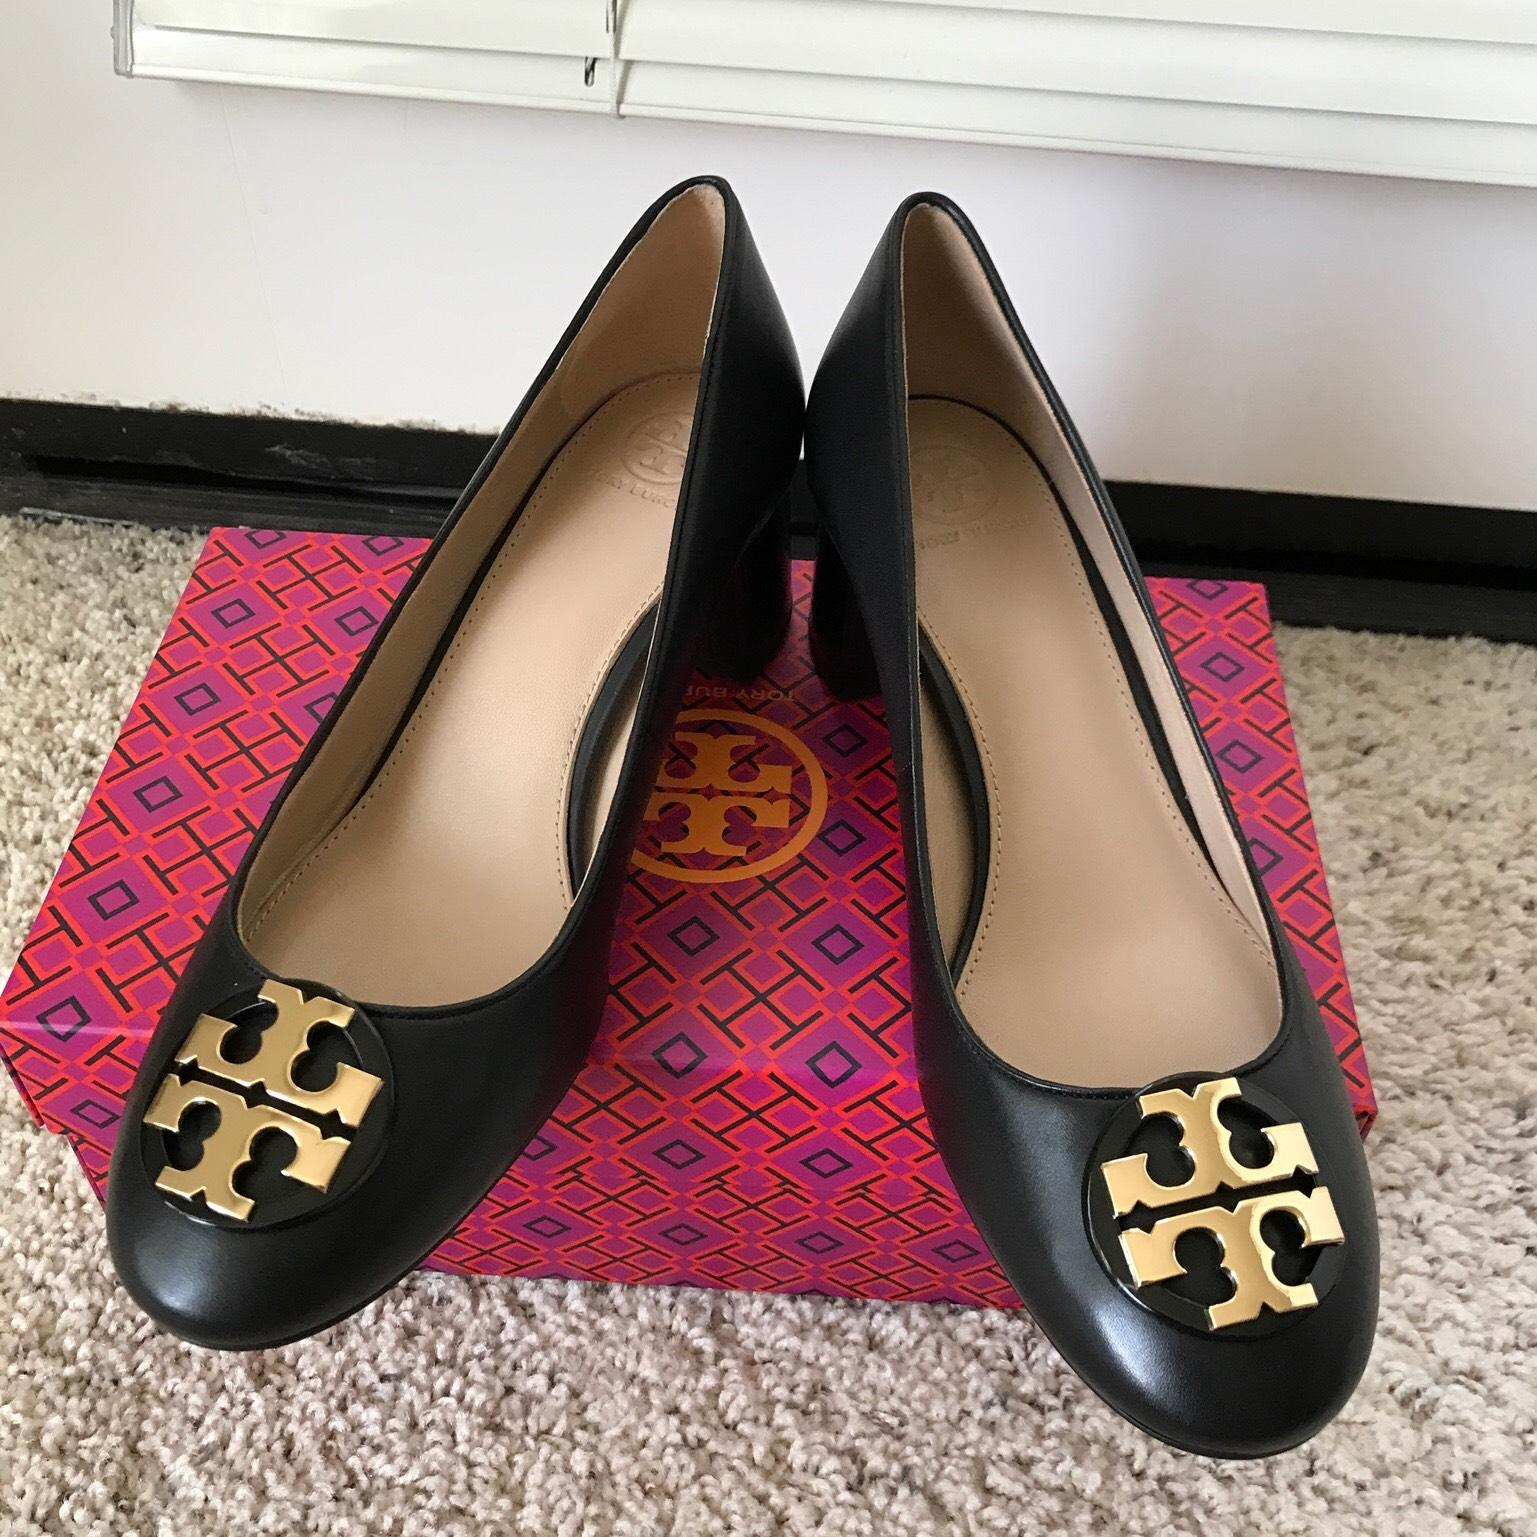 Tory Burch Black/ Gold 10m ' Janey ' 50mm Calf Leather Pumps Size US 10  Regular (M, B) - Tradesy